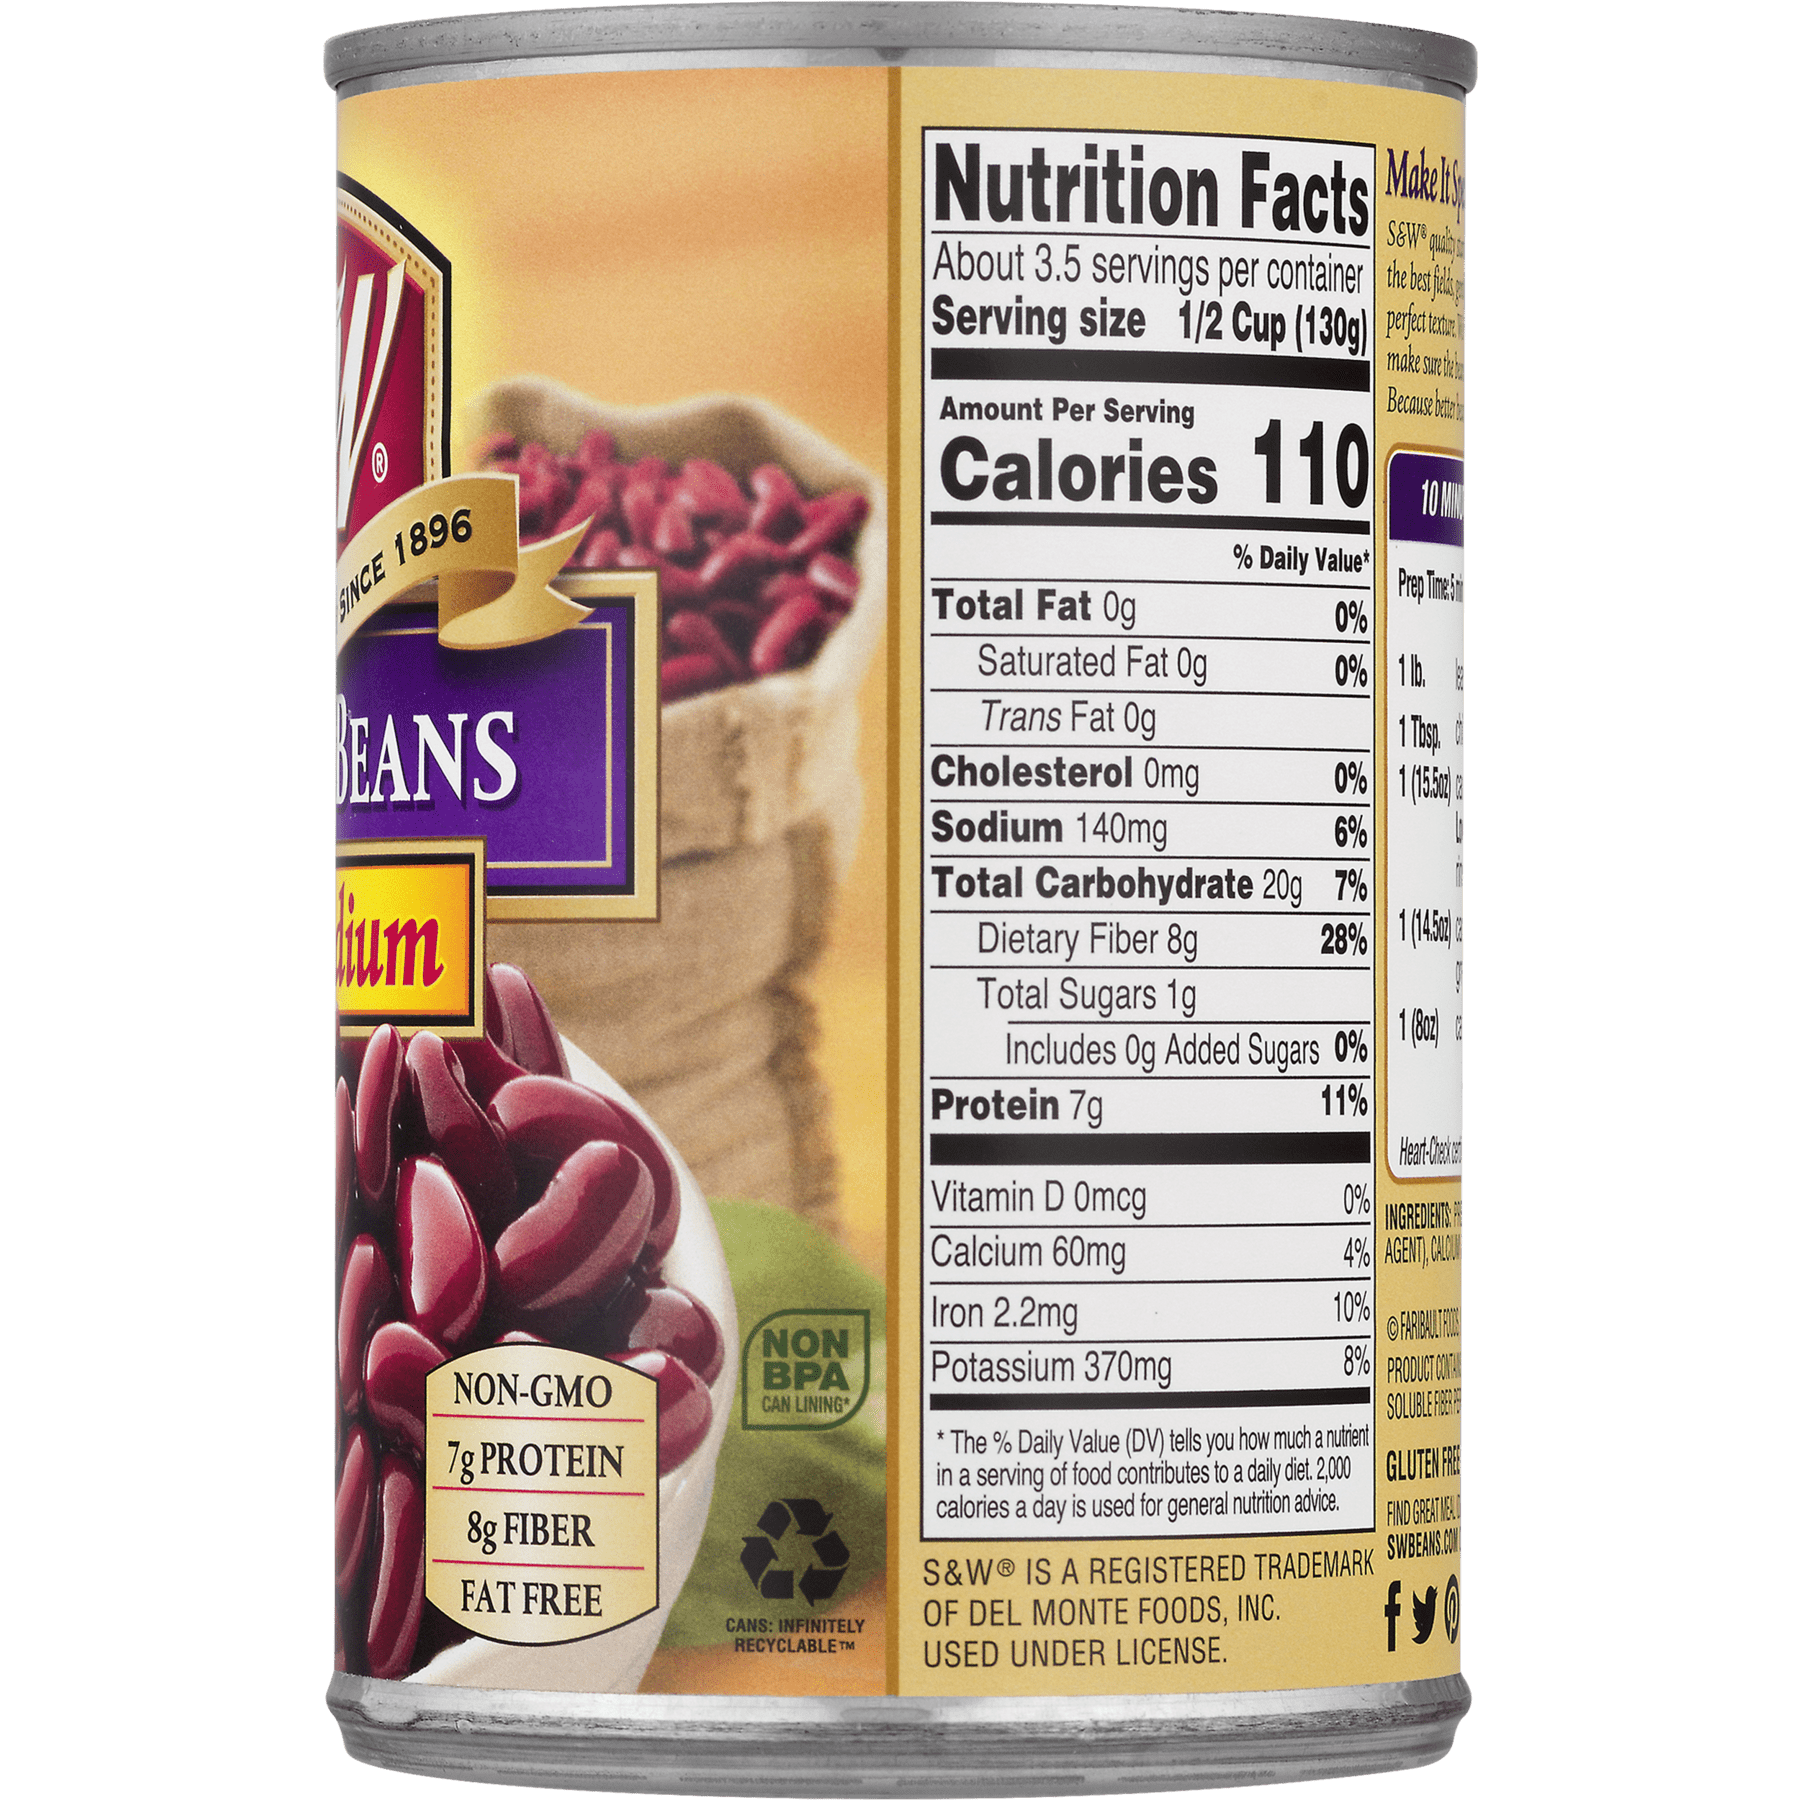 Kidney Beans Nutrition Facts Nutritionwalls